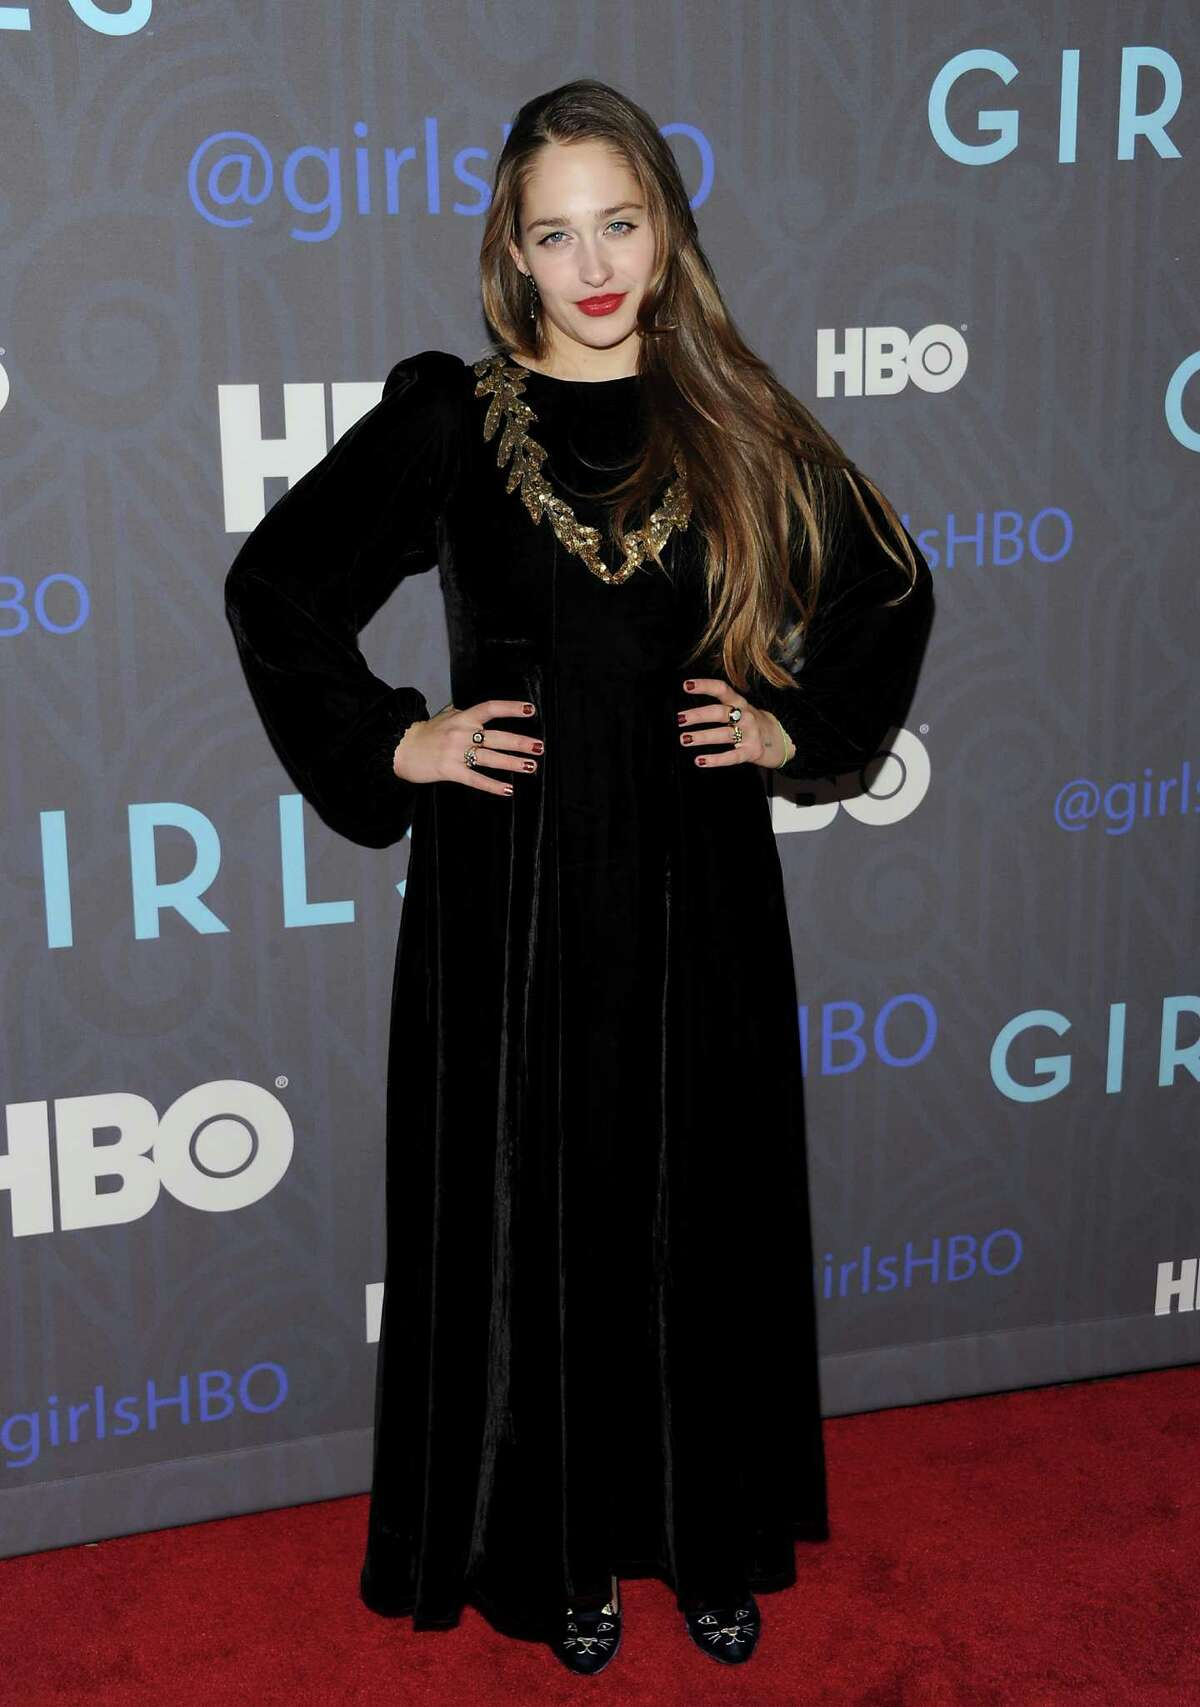 Actress Jemima Kirke attends the HBO premiere of